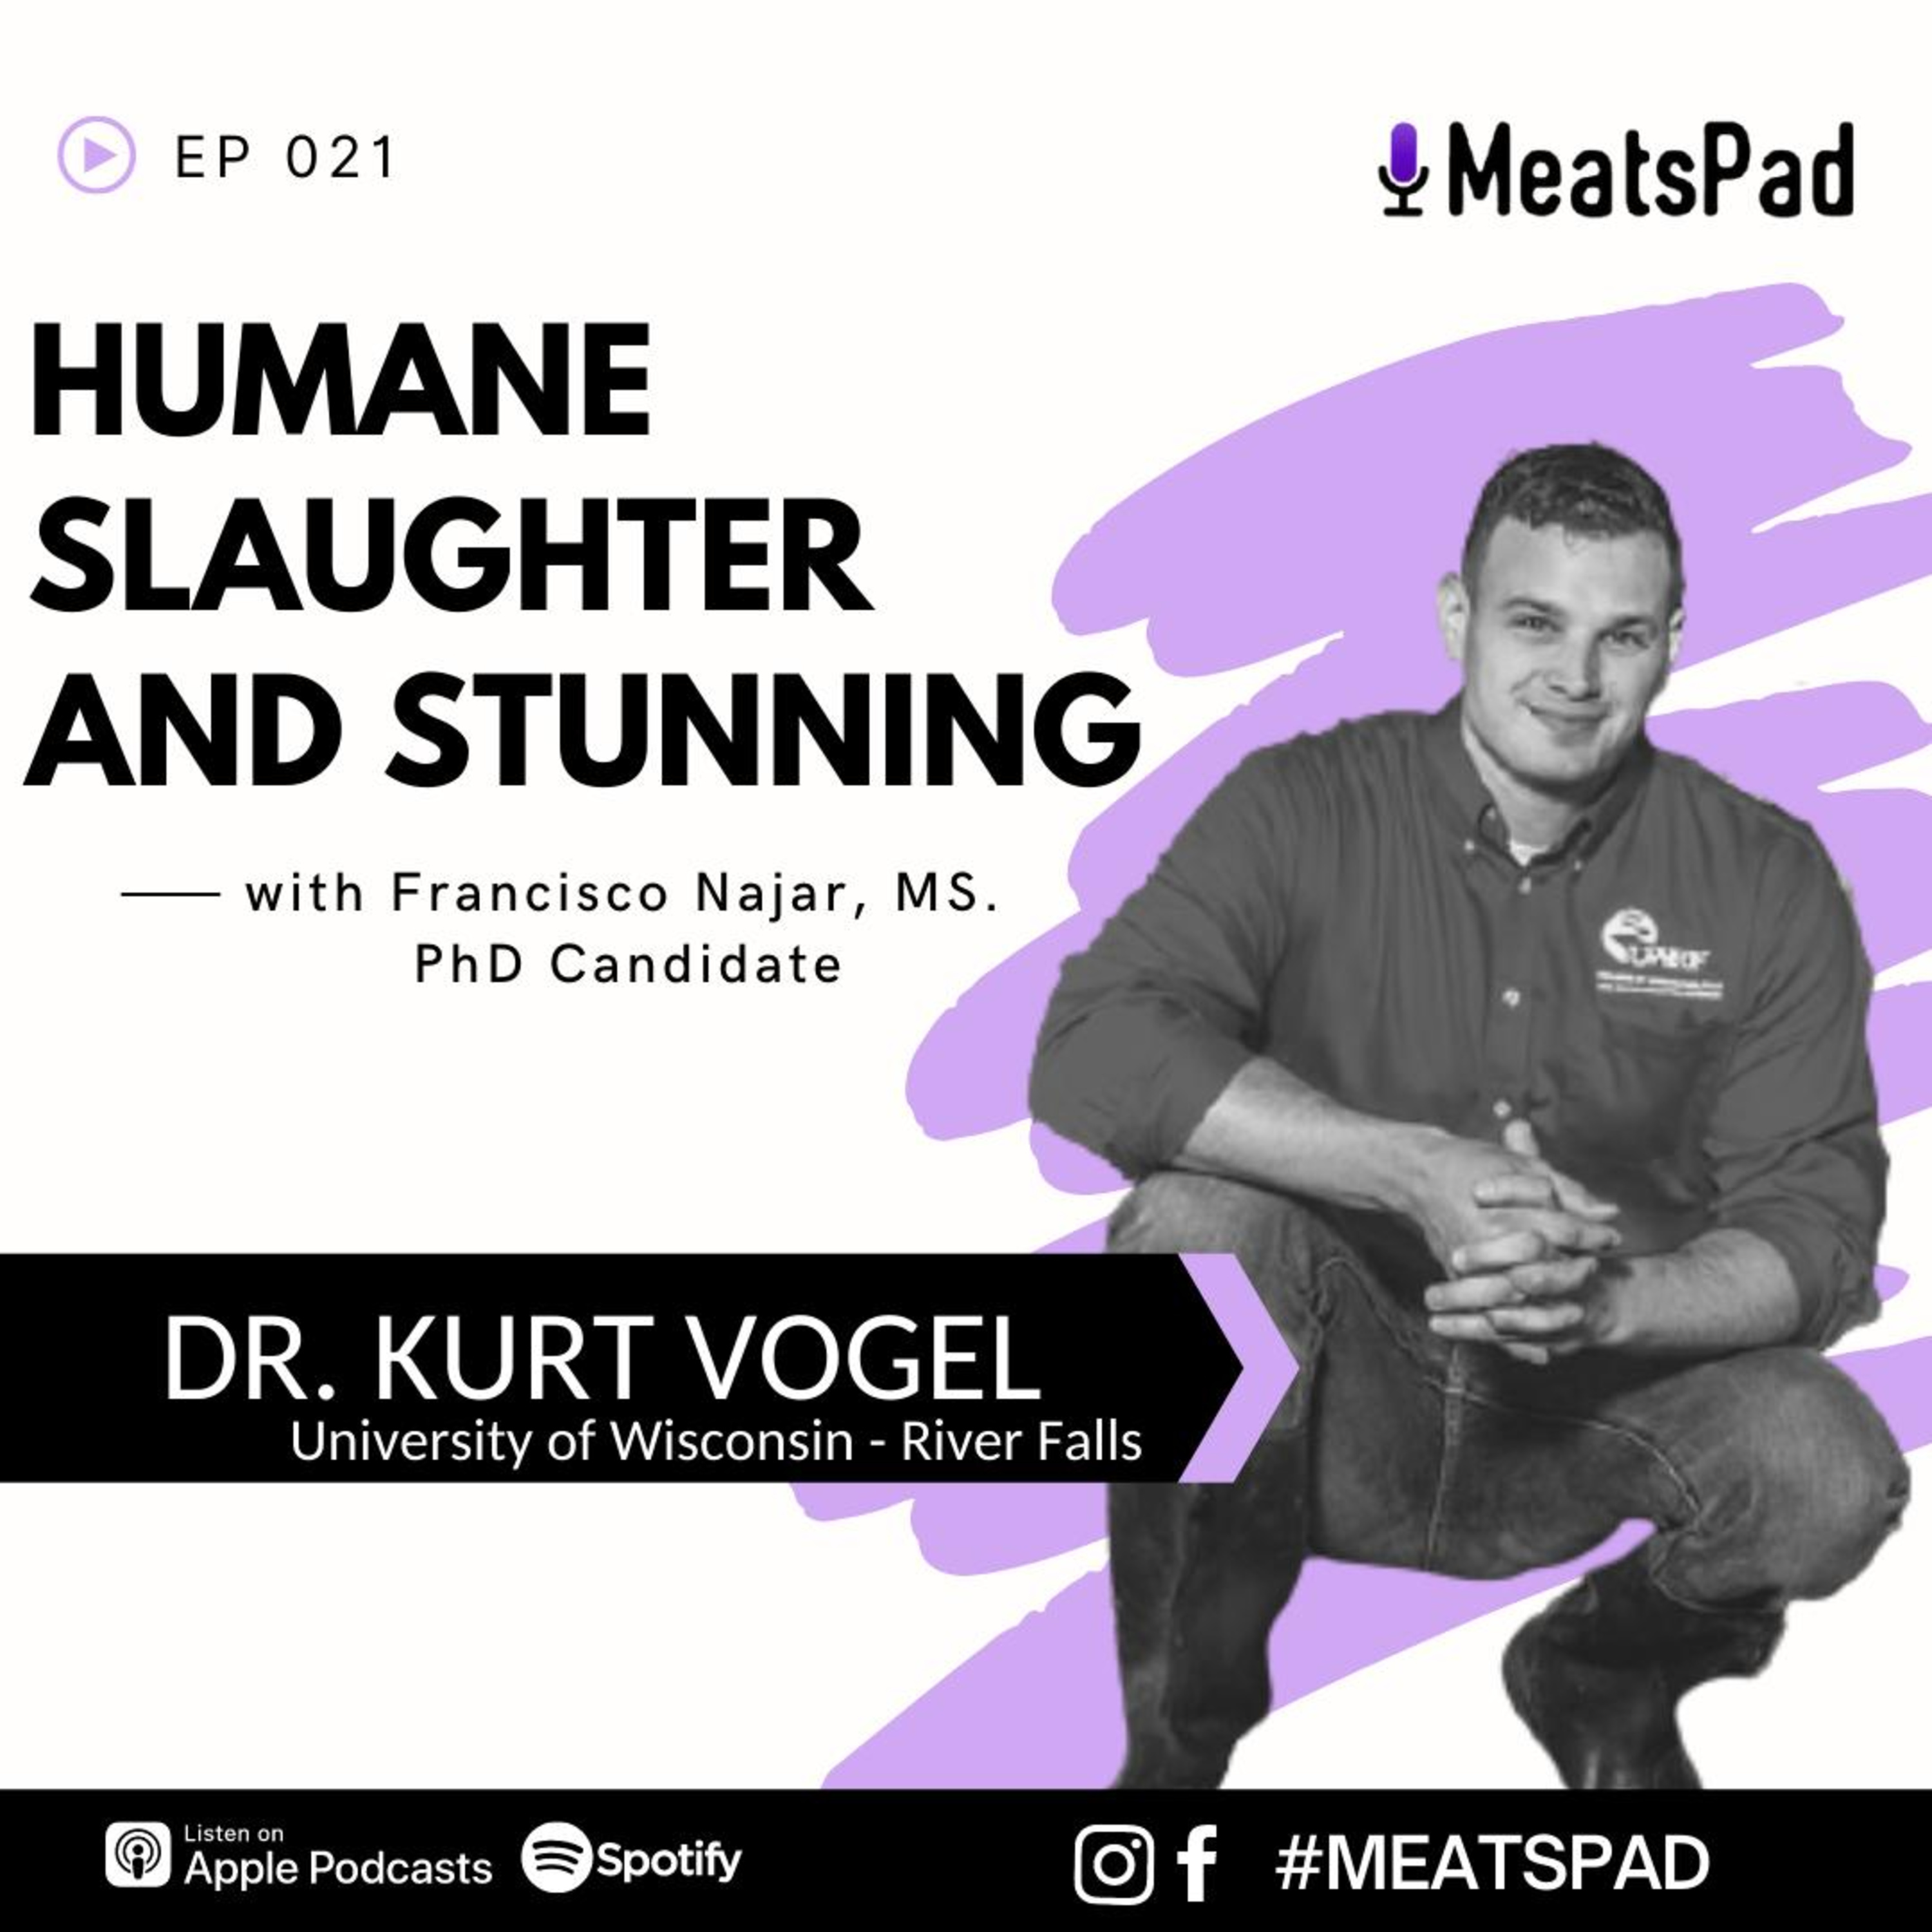 Humane slaughter and stunning - Dr. Kurt Vogel